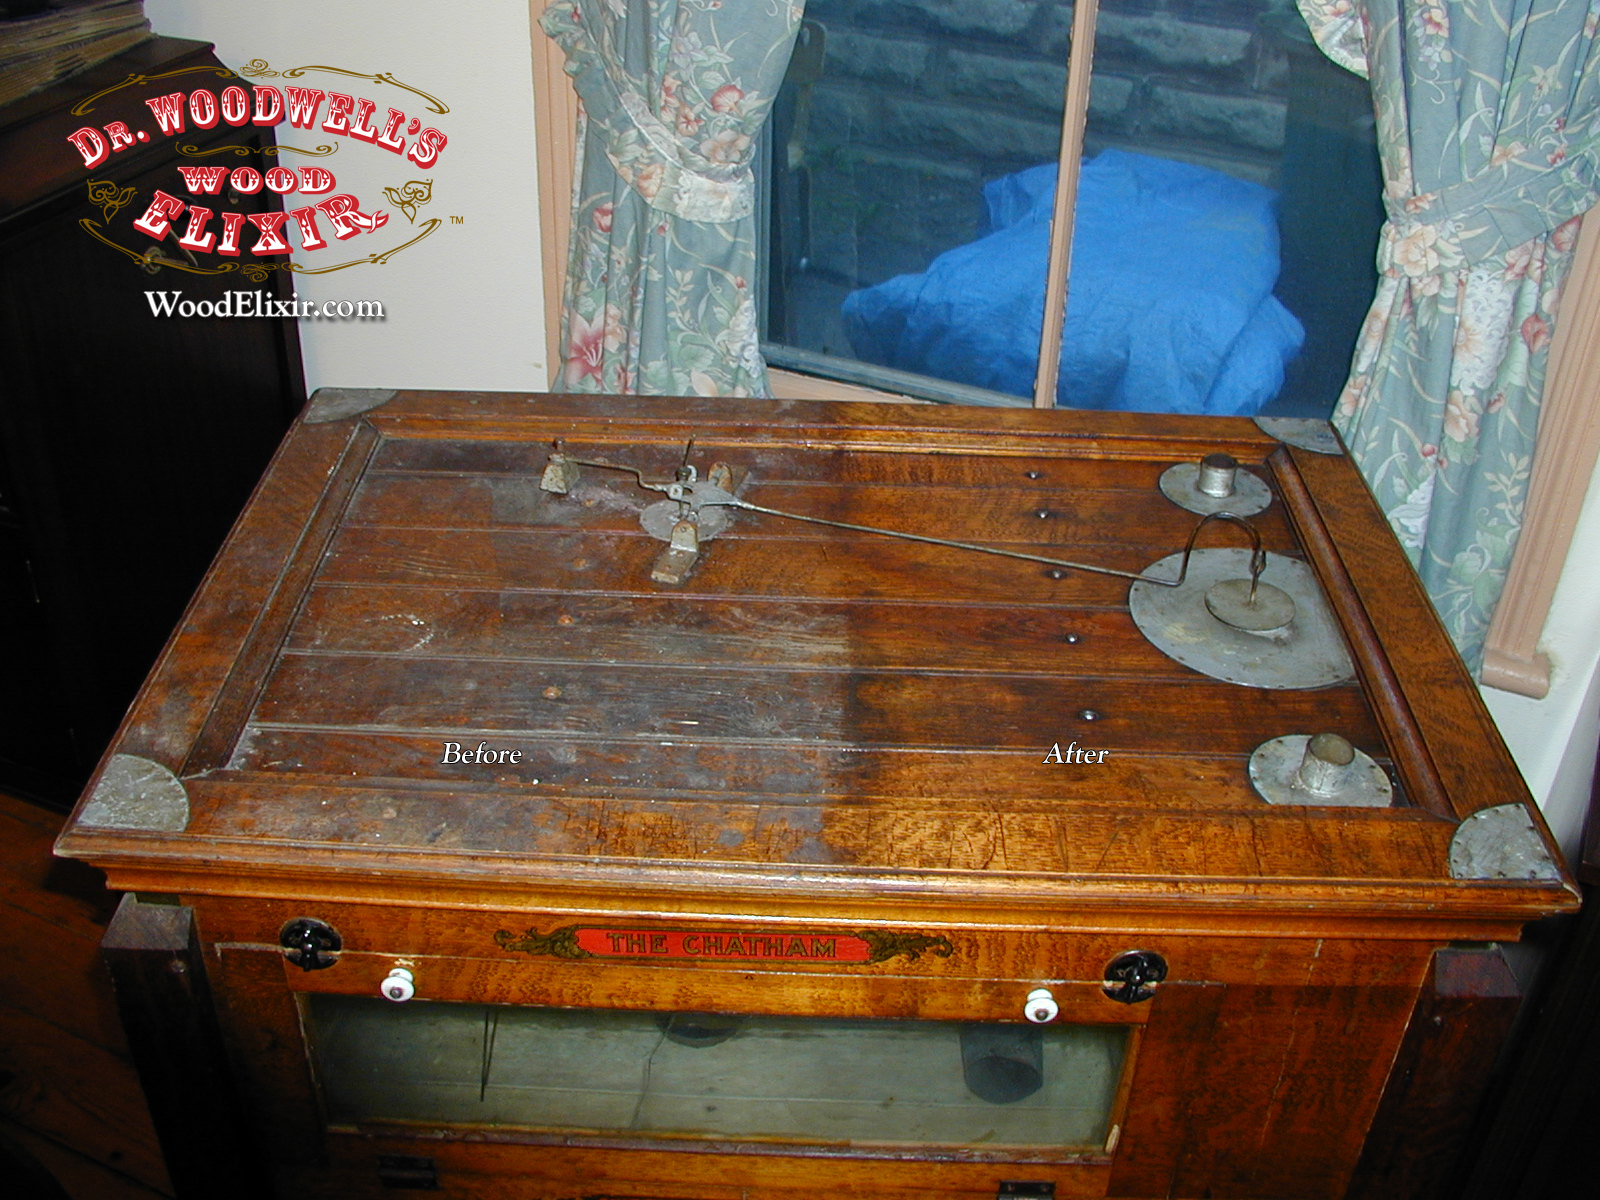 Charming How To Restore Antiques With Wood Elixir